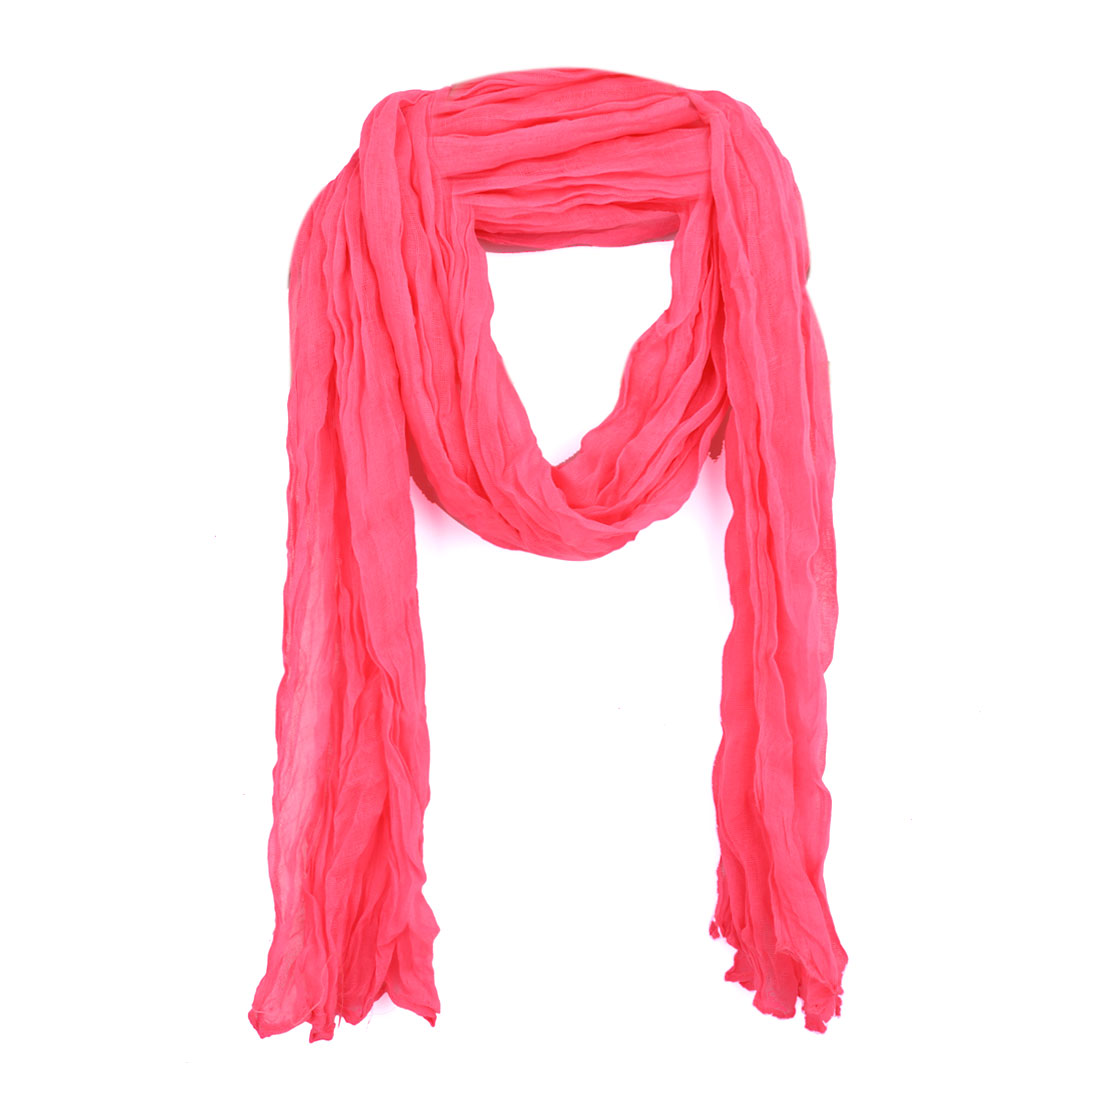 Womens Accessories  Fashion Scarves  Women Ruched Detail Neck Cheap Neck Scarves For Women